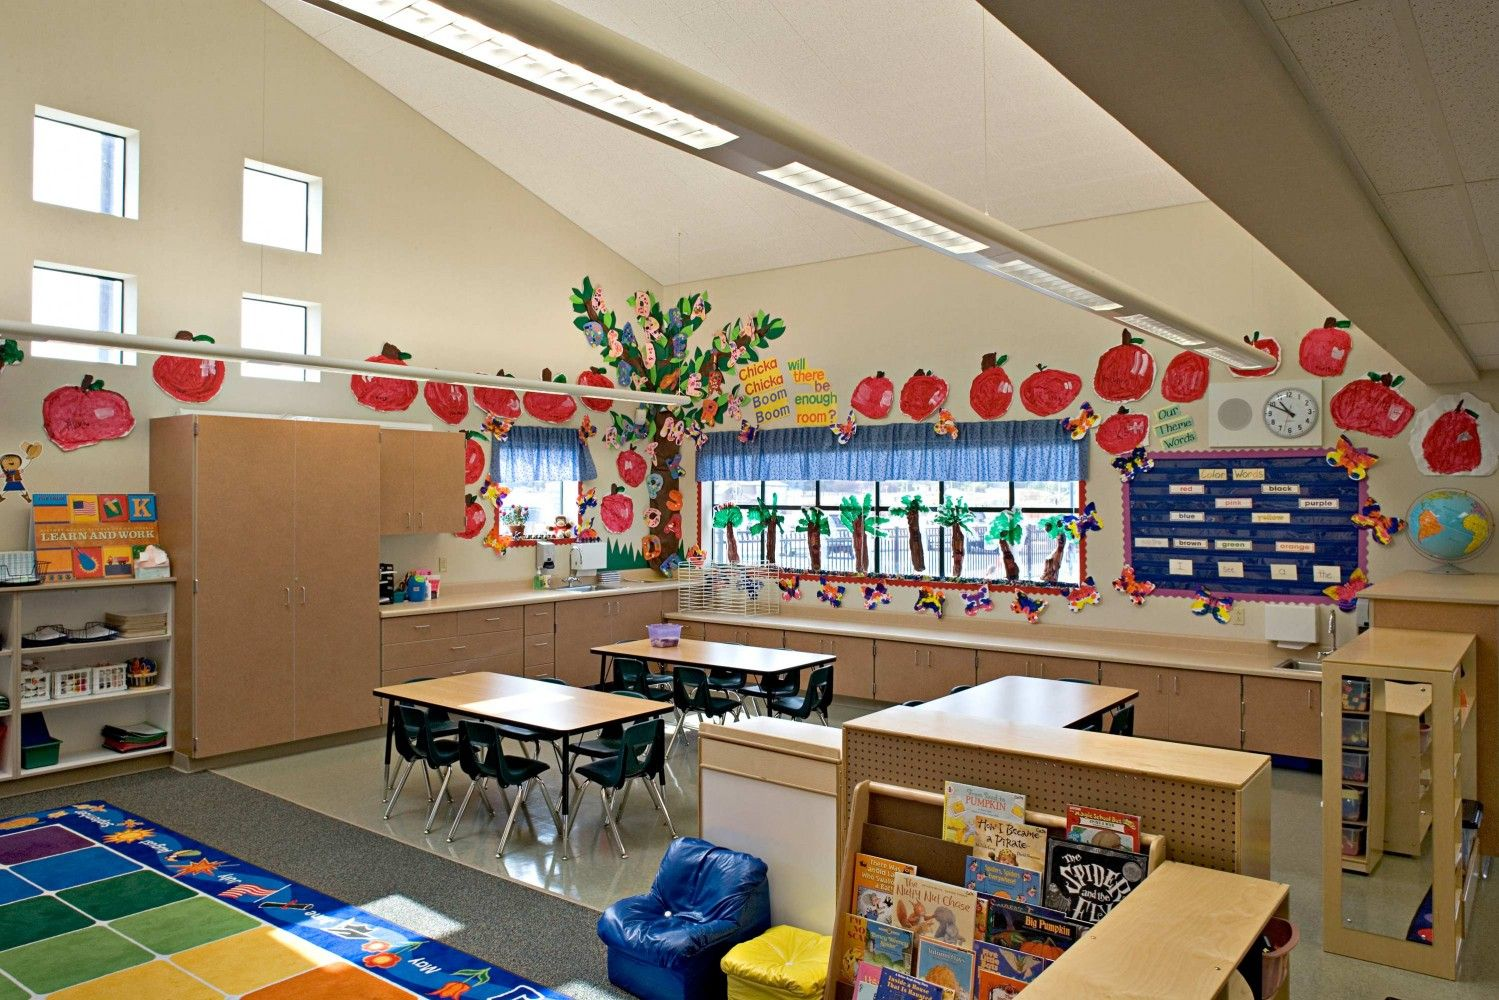 Classroom Design For Primary School ~ Elementary classroom design barrett ranch